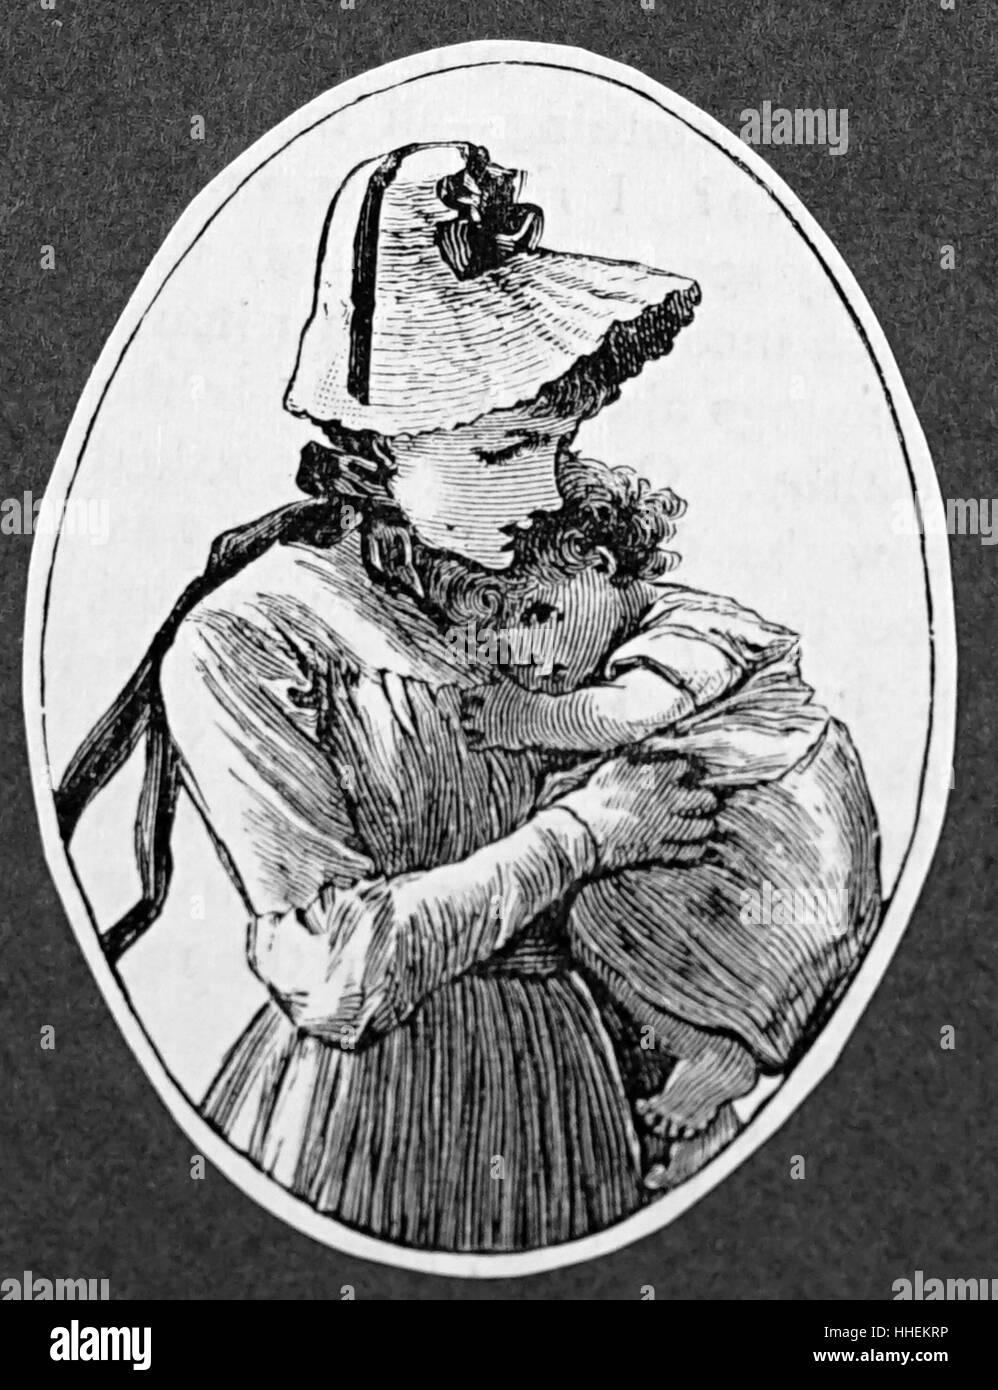 Engraving of a young nursemaid and her charge. Dated 19th Century - Stock Image